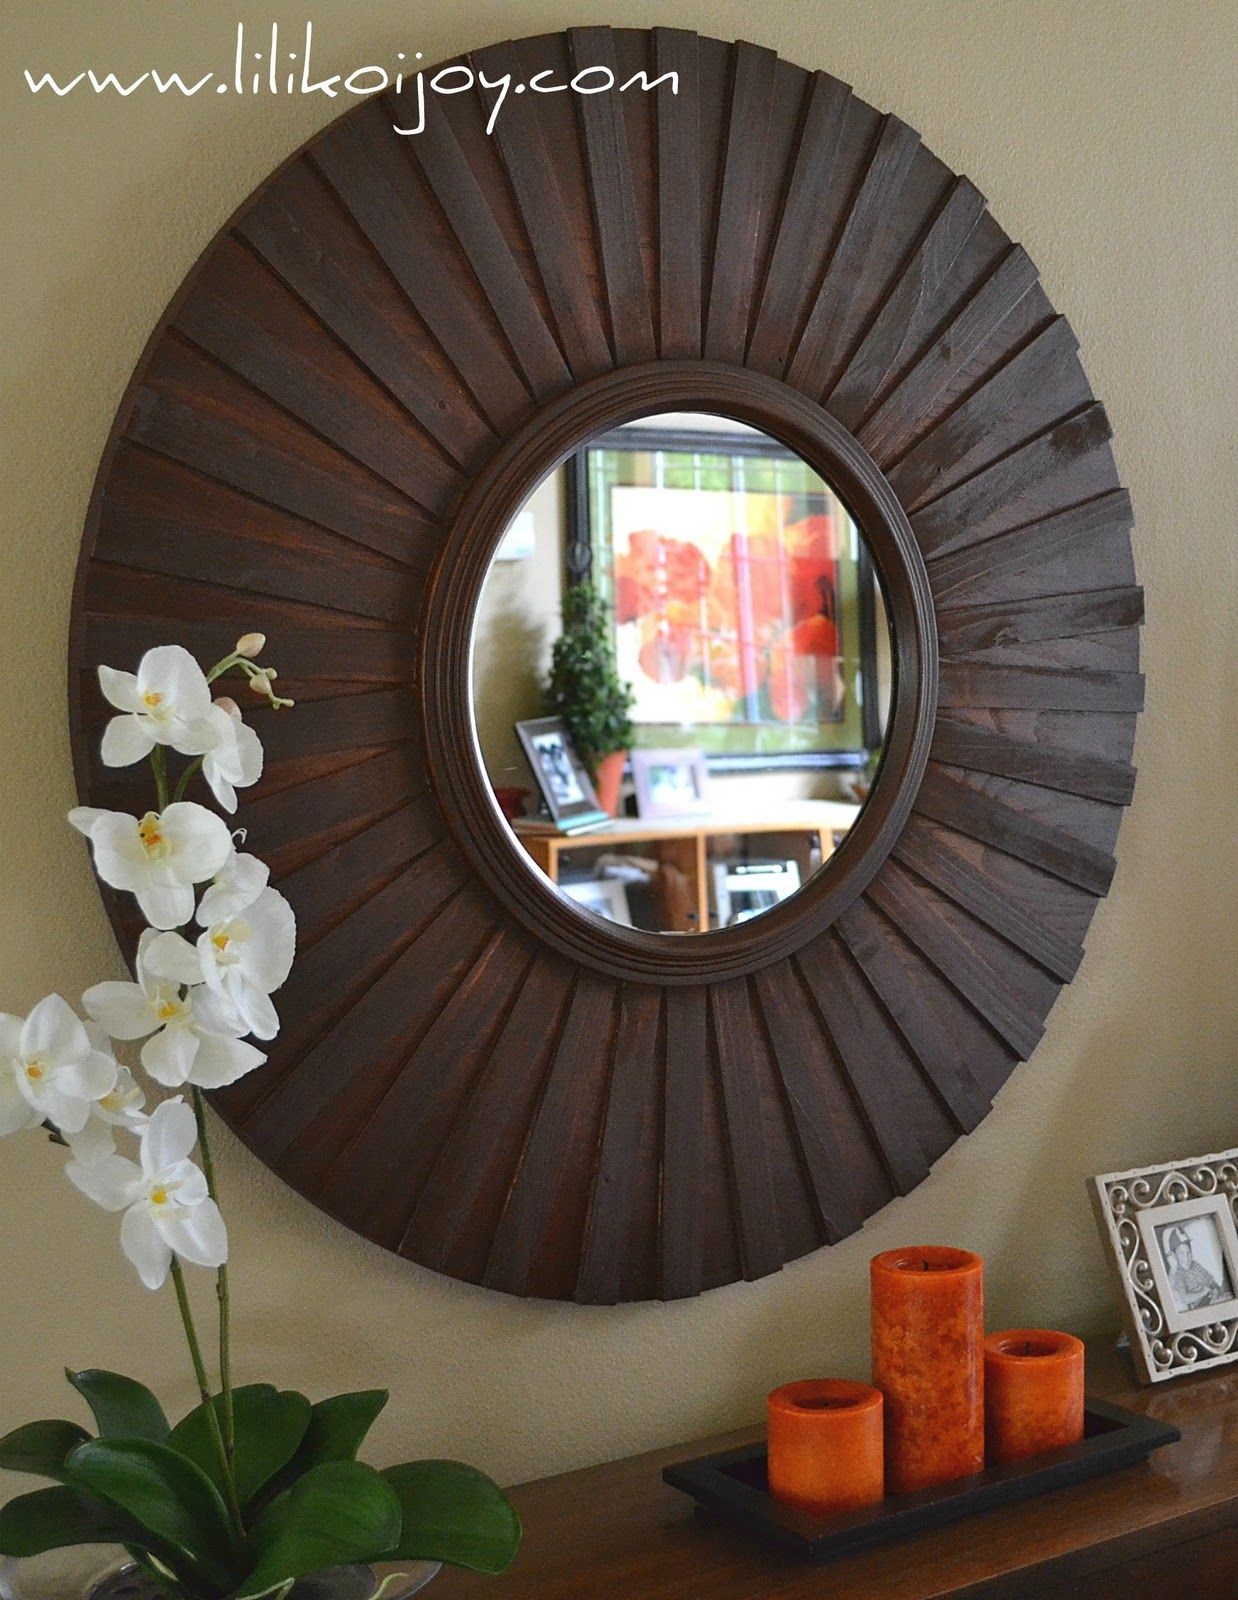 Inexpensive DIY sunburst mirror can paint any color to fit color